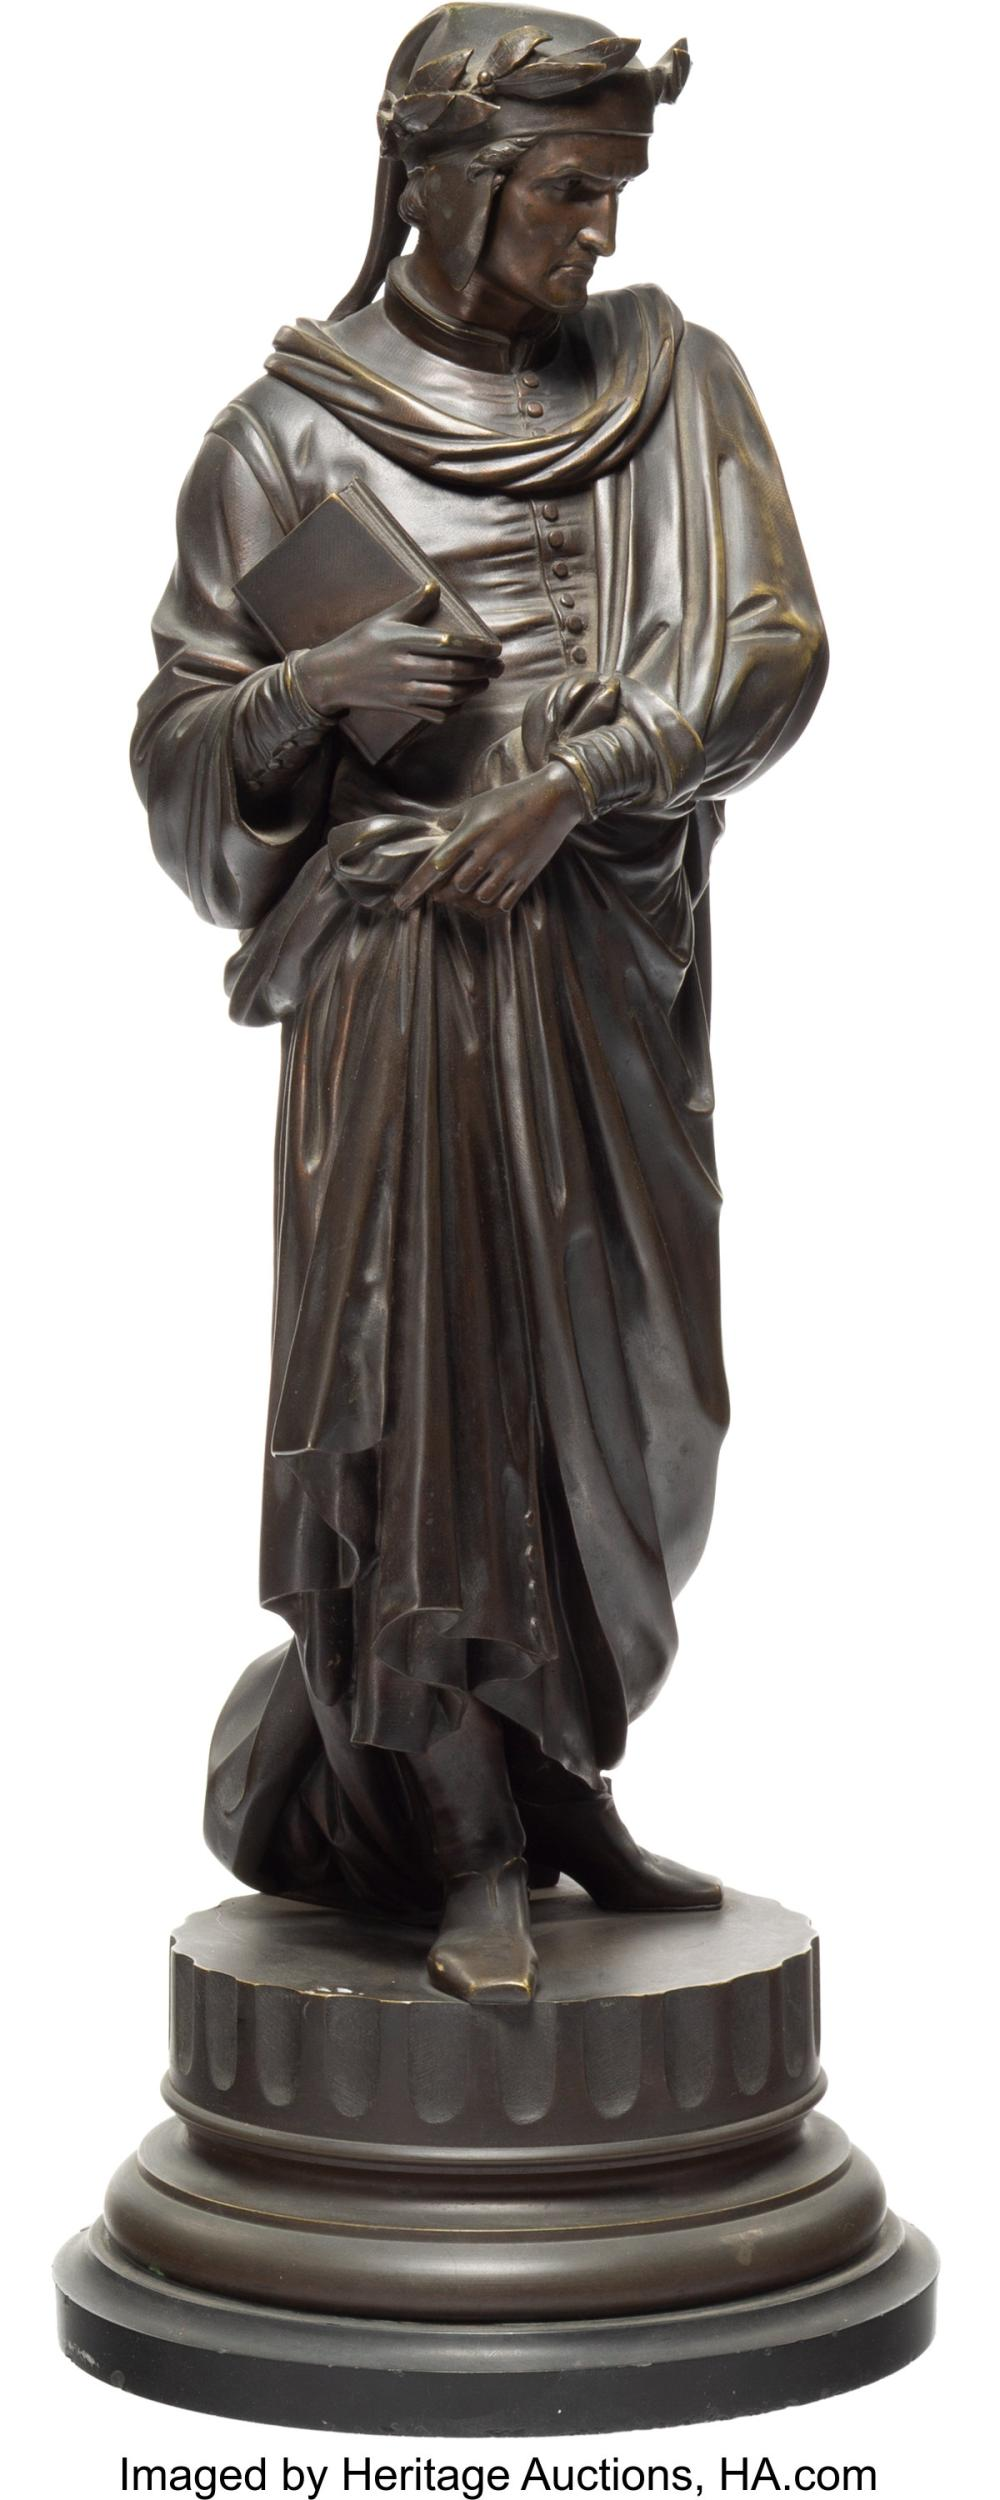 Lot 21199: Continental School (20th Century) Dante Bronze with brown patina 21 inches (53.